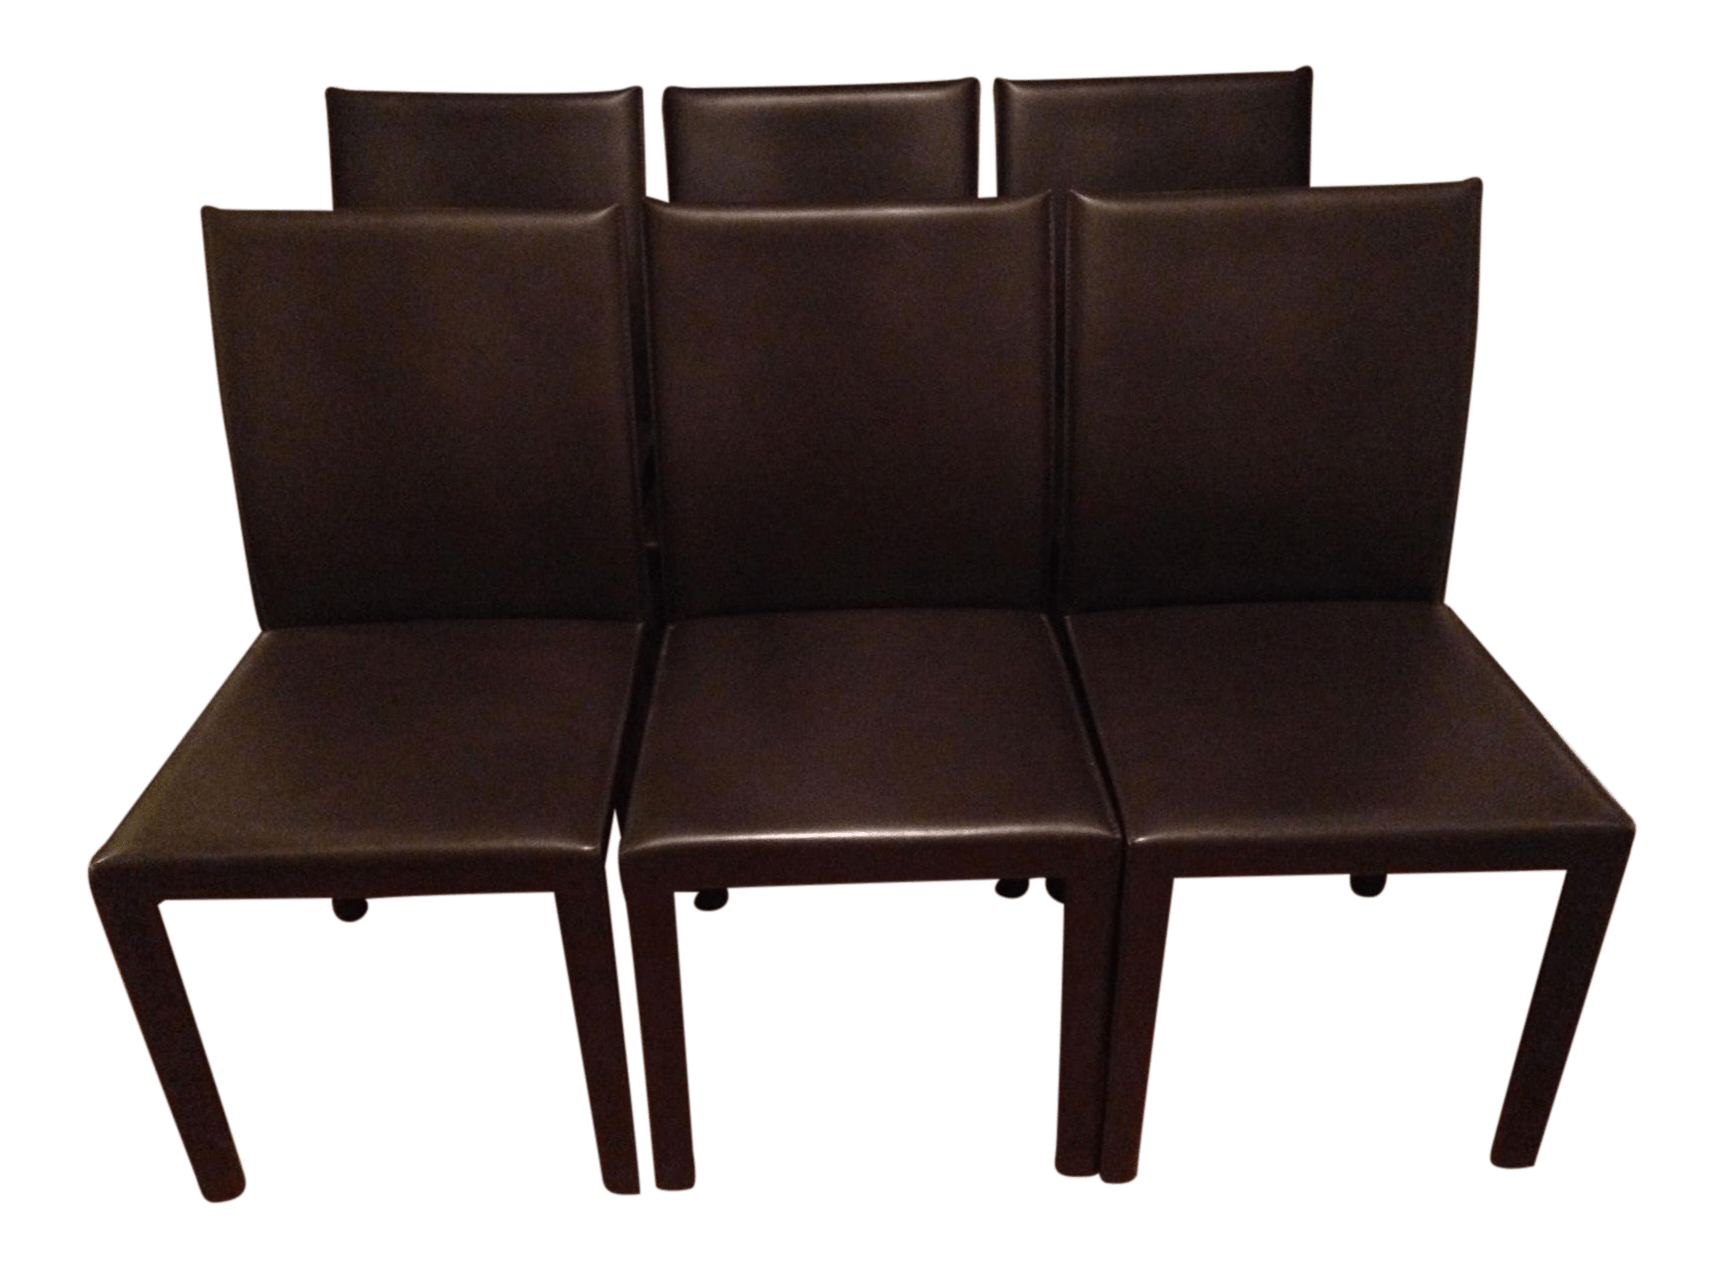 crate and barrel chairs dining chair covers for wedding leather set of 6 chairish